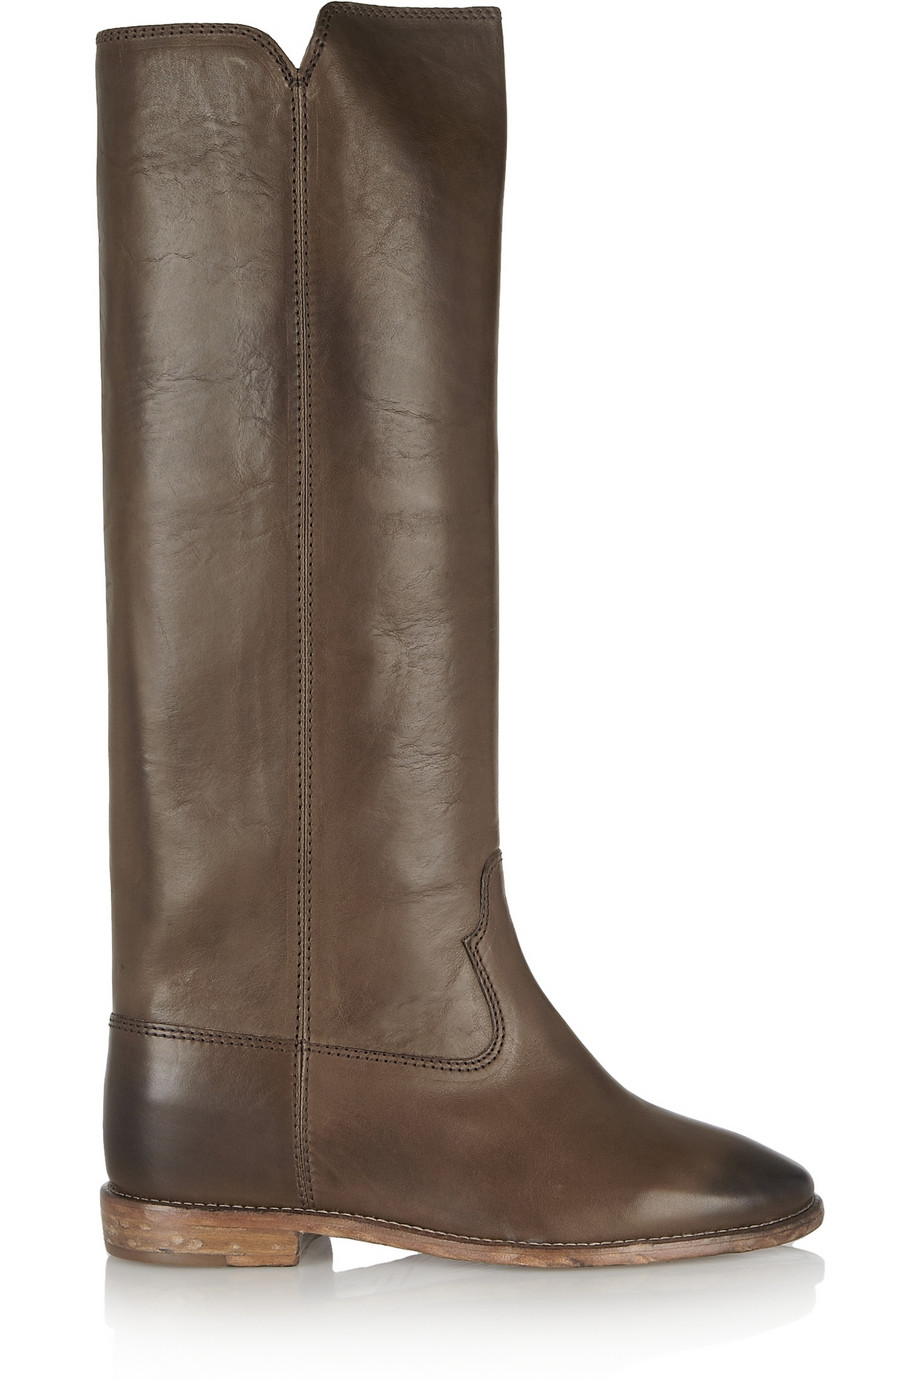 ISABEL MARANT Étoile Chess leather concealed wedge knee boots, $980,  net-a-porter.com